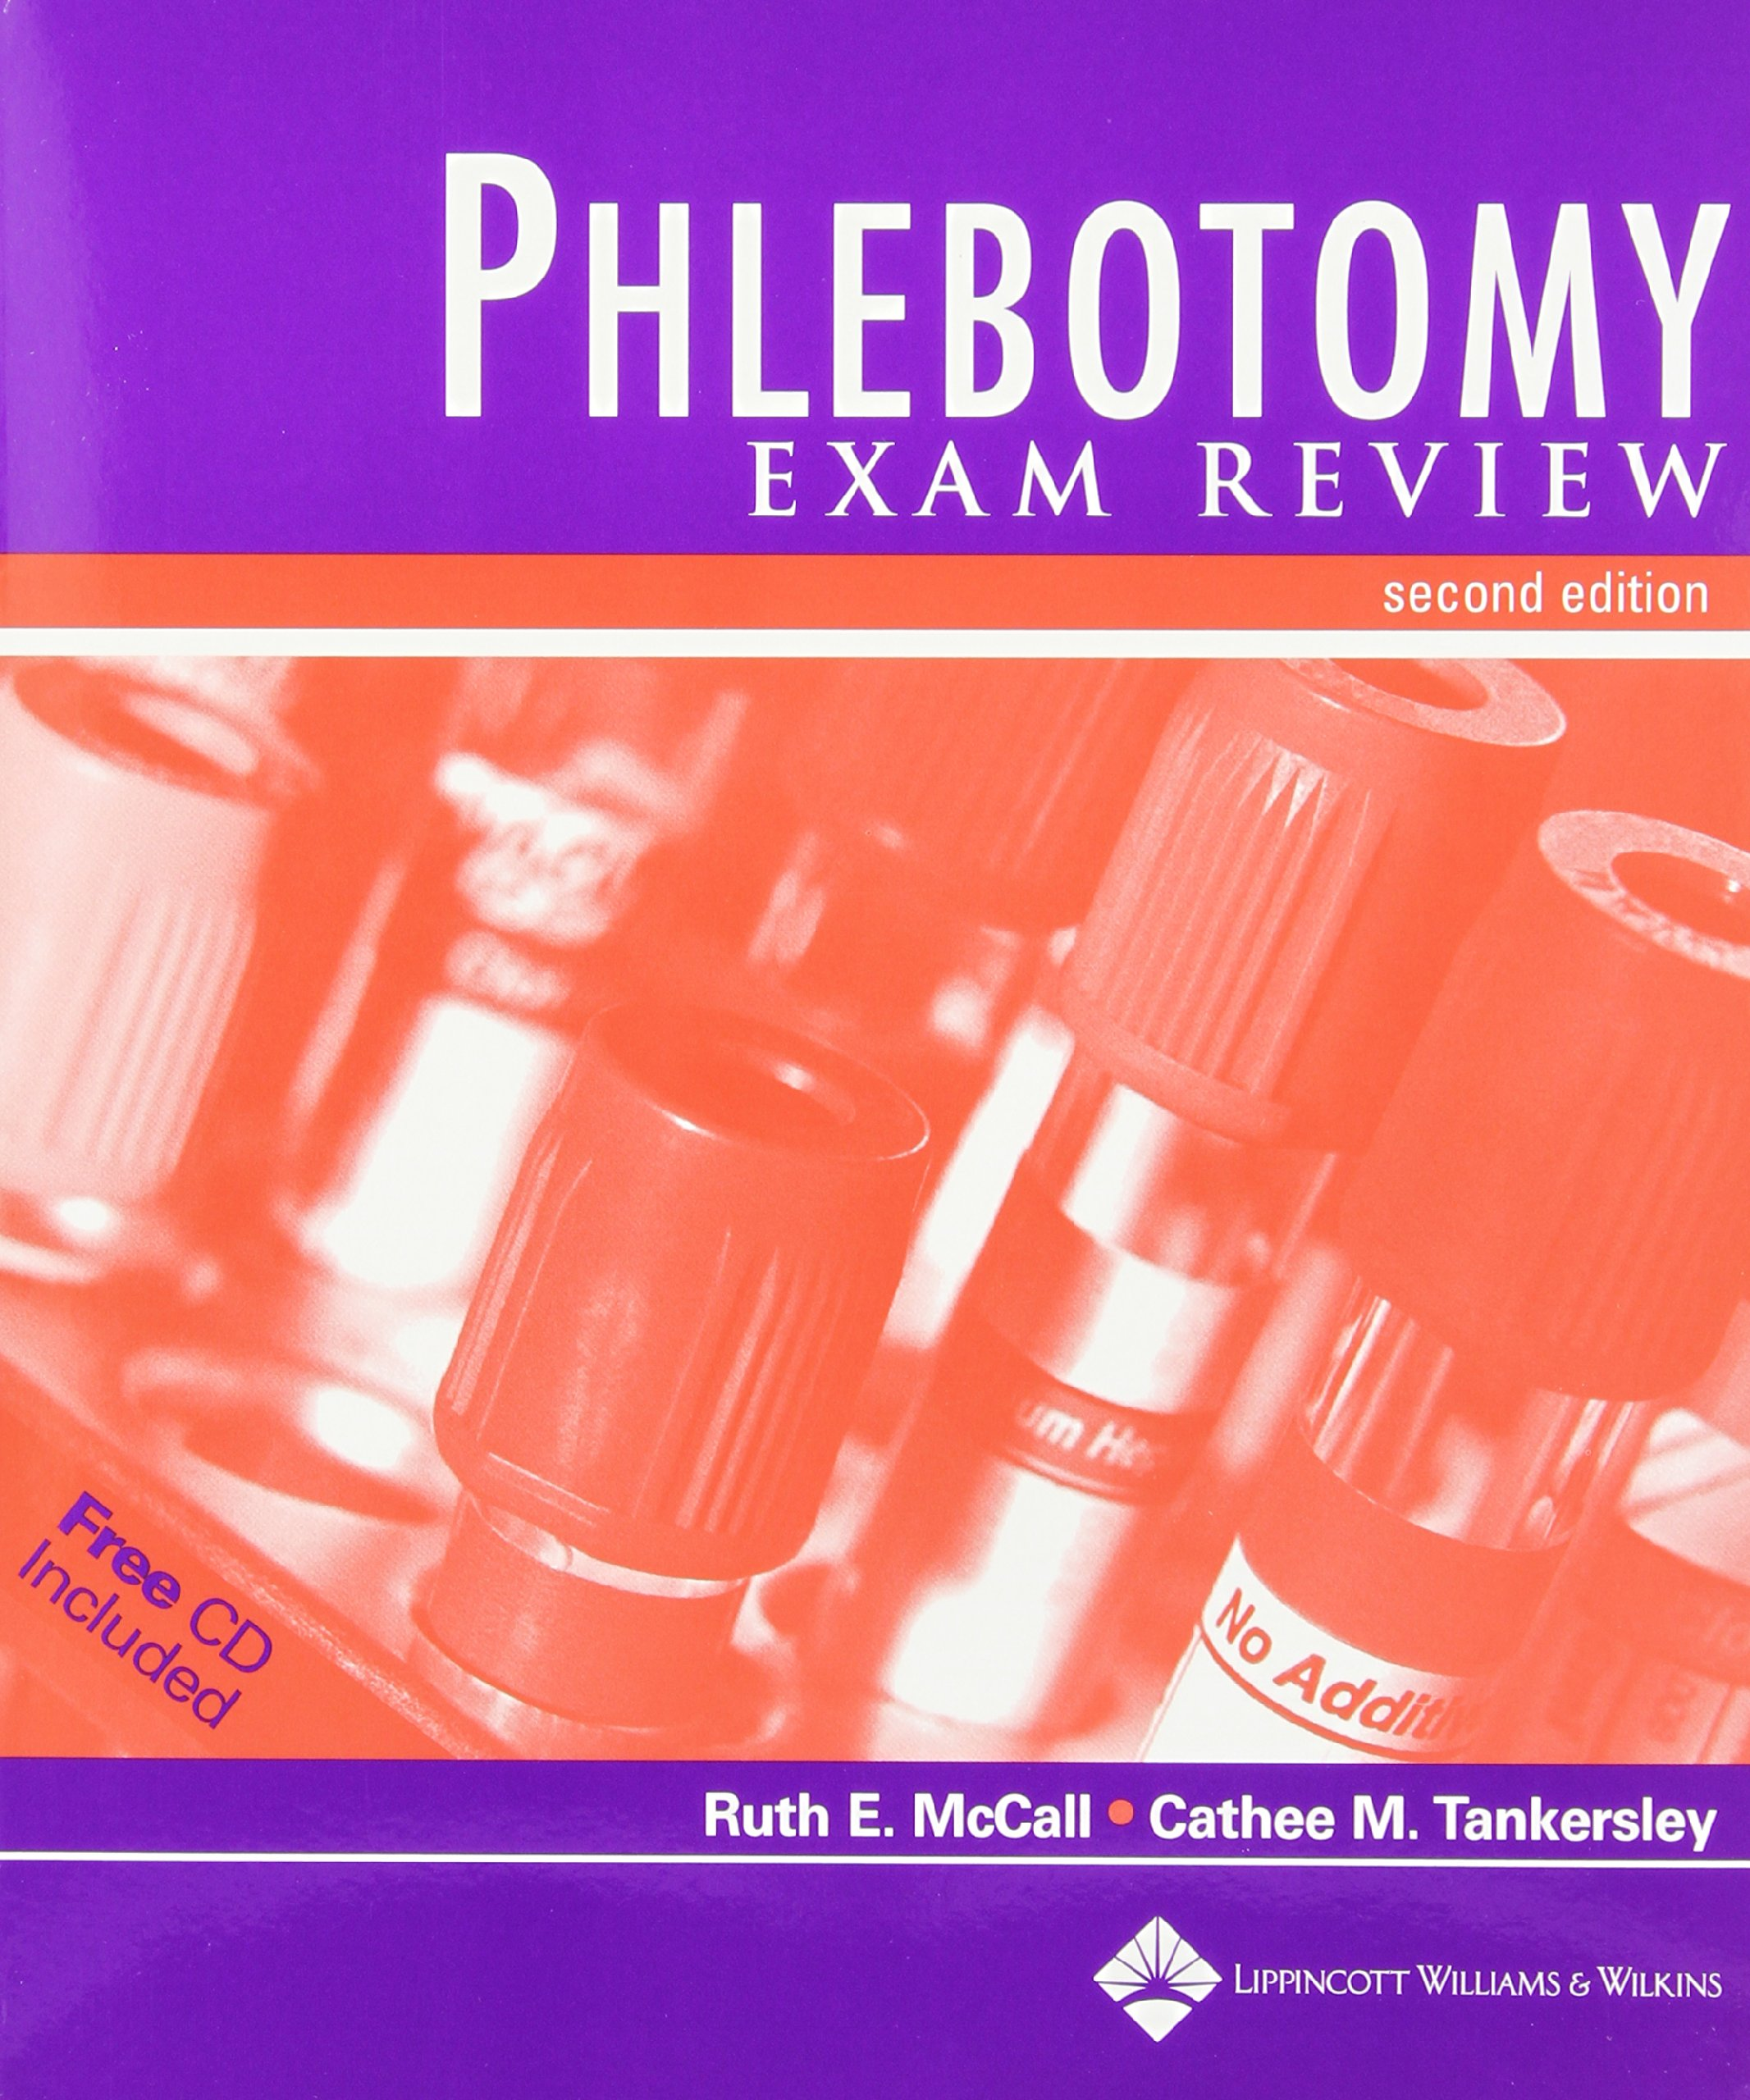 Phlebotomy essentials phlebotomy exam review ruth e mccall phlebotomy essentials phlebotomy exam review ruth e mccall cathee m tankersley 9780781750851 amazon books xflitez Images